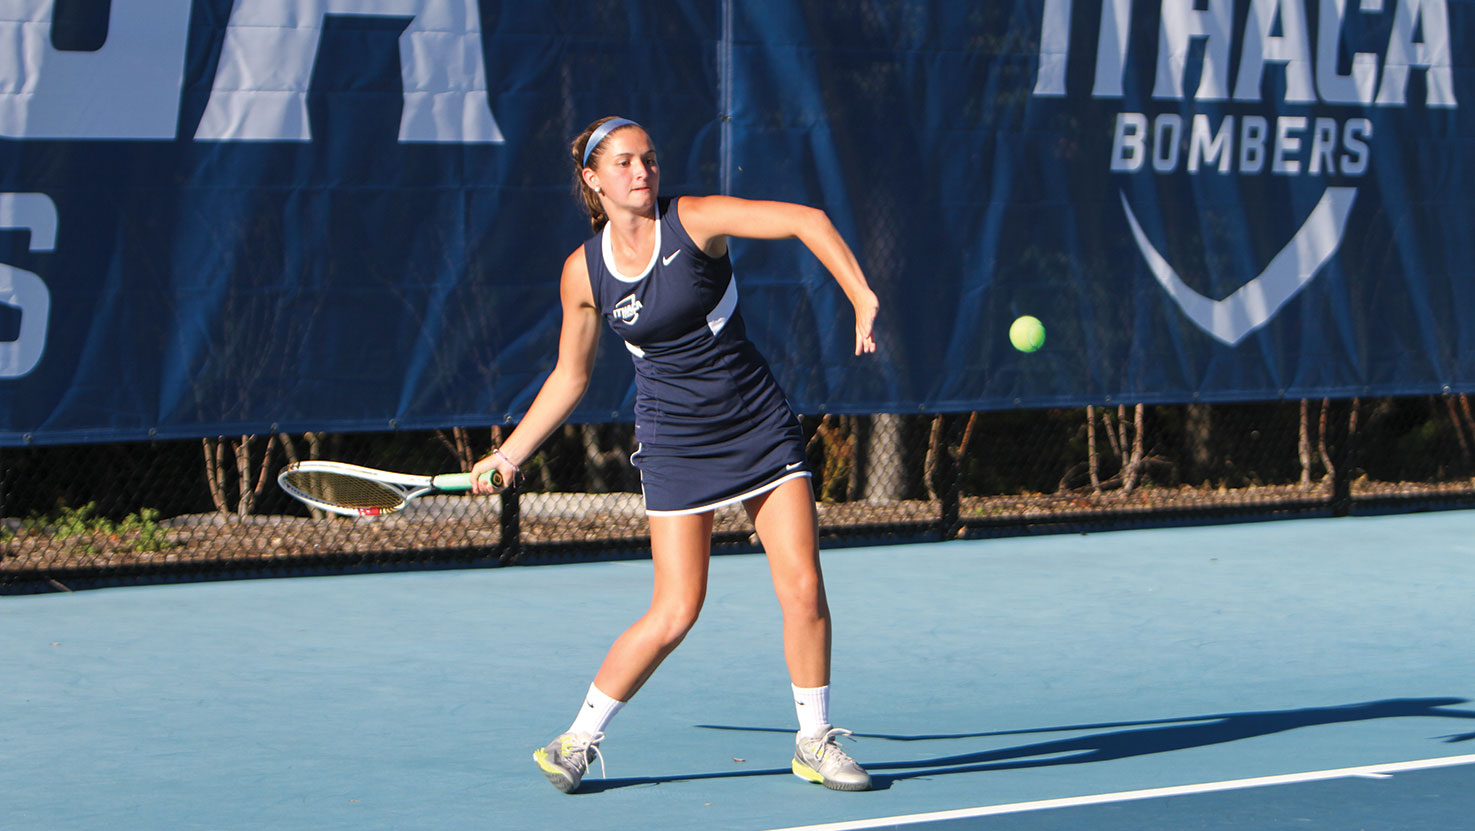 Undefeated Empire 8 record motivates women's tennis team